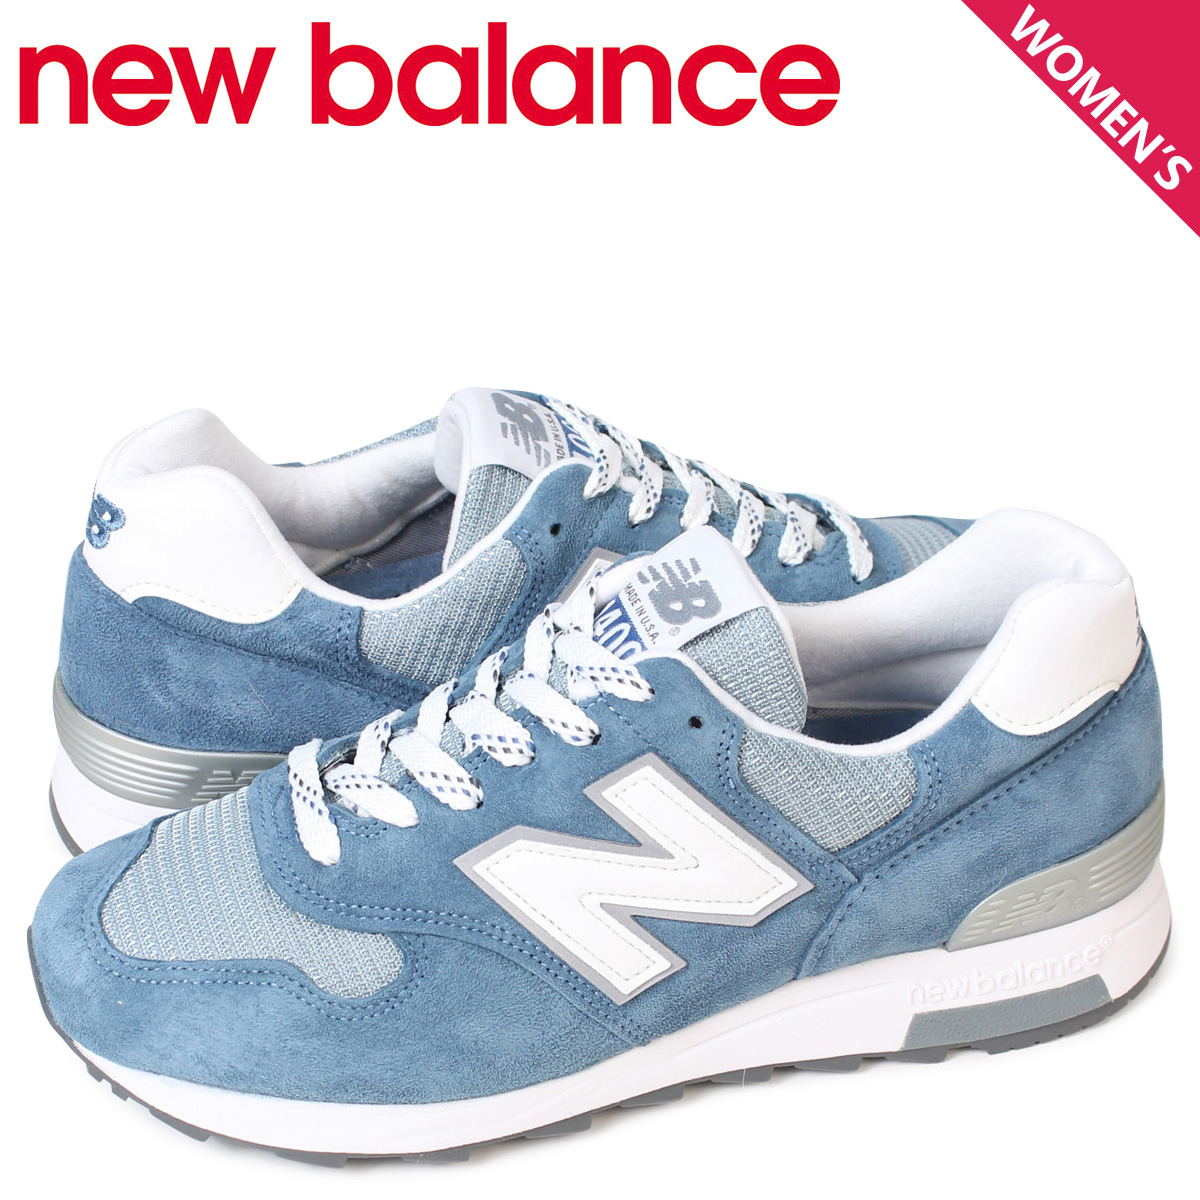 ab61844e1 ALLSPORTS  new balance 998 men s New Balance sneakers M998DBR D Wise MADE  IN USA shoes gray  179